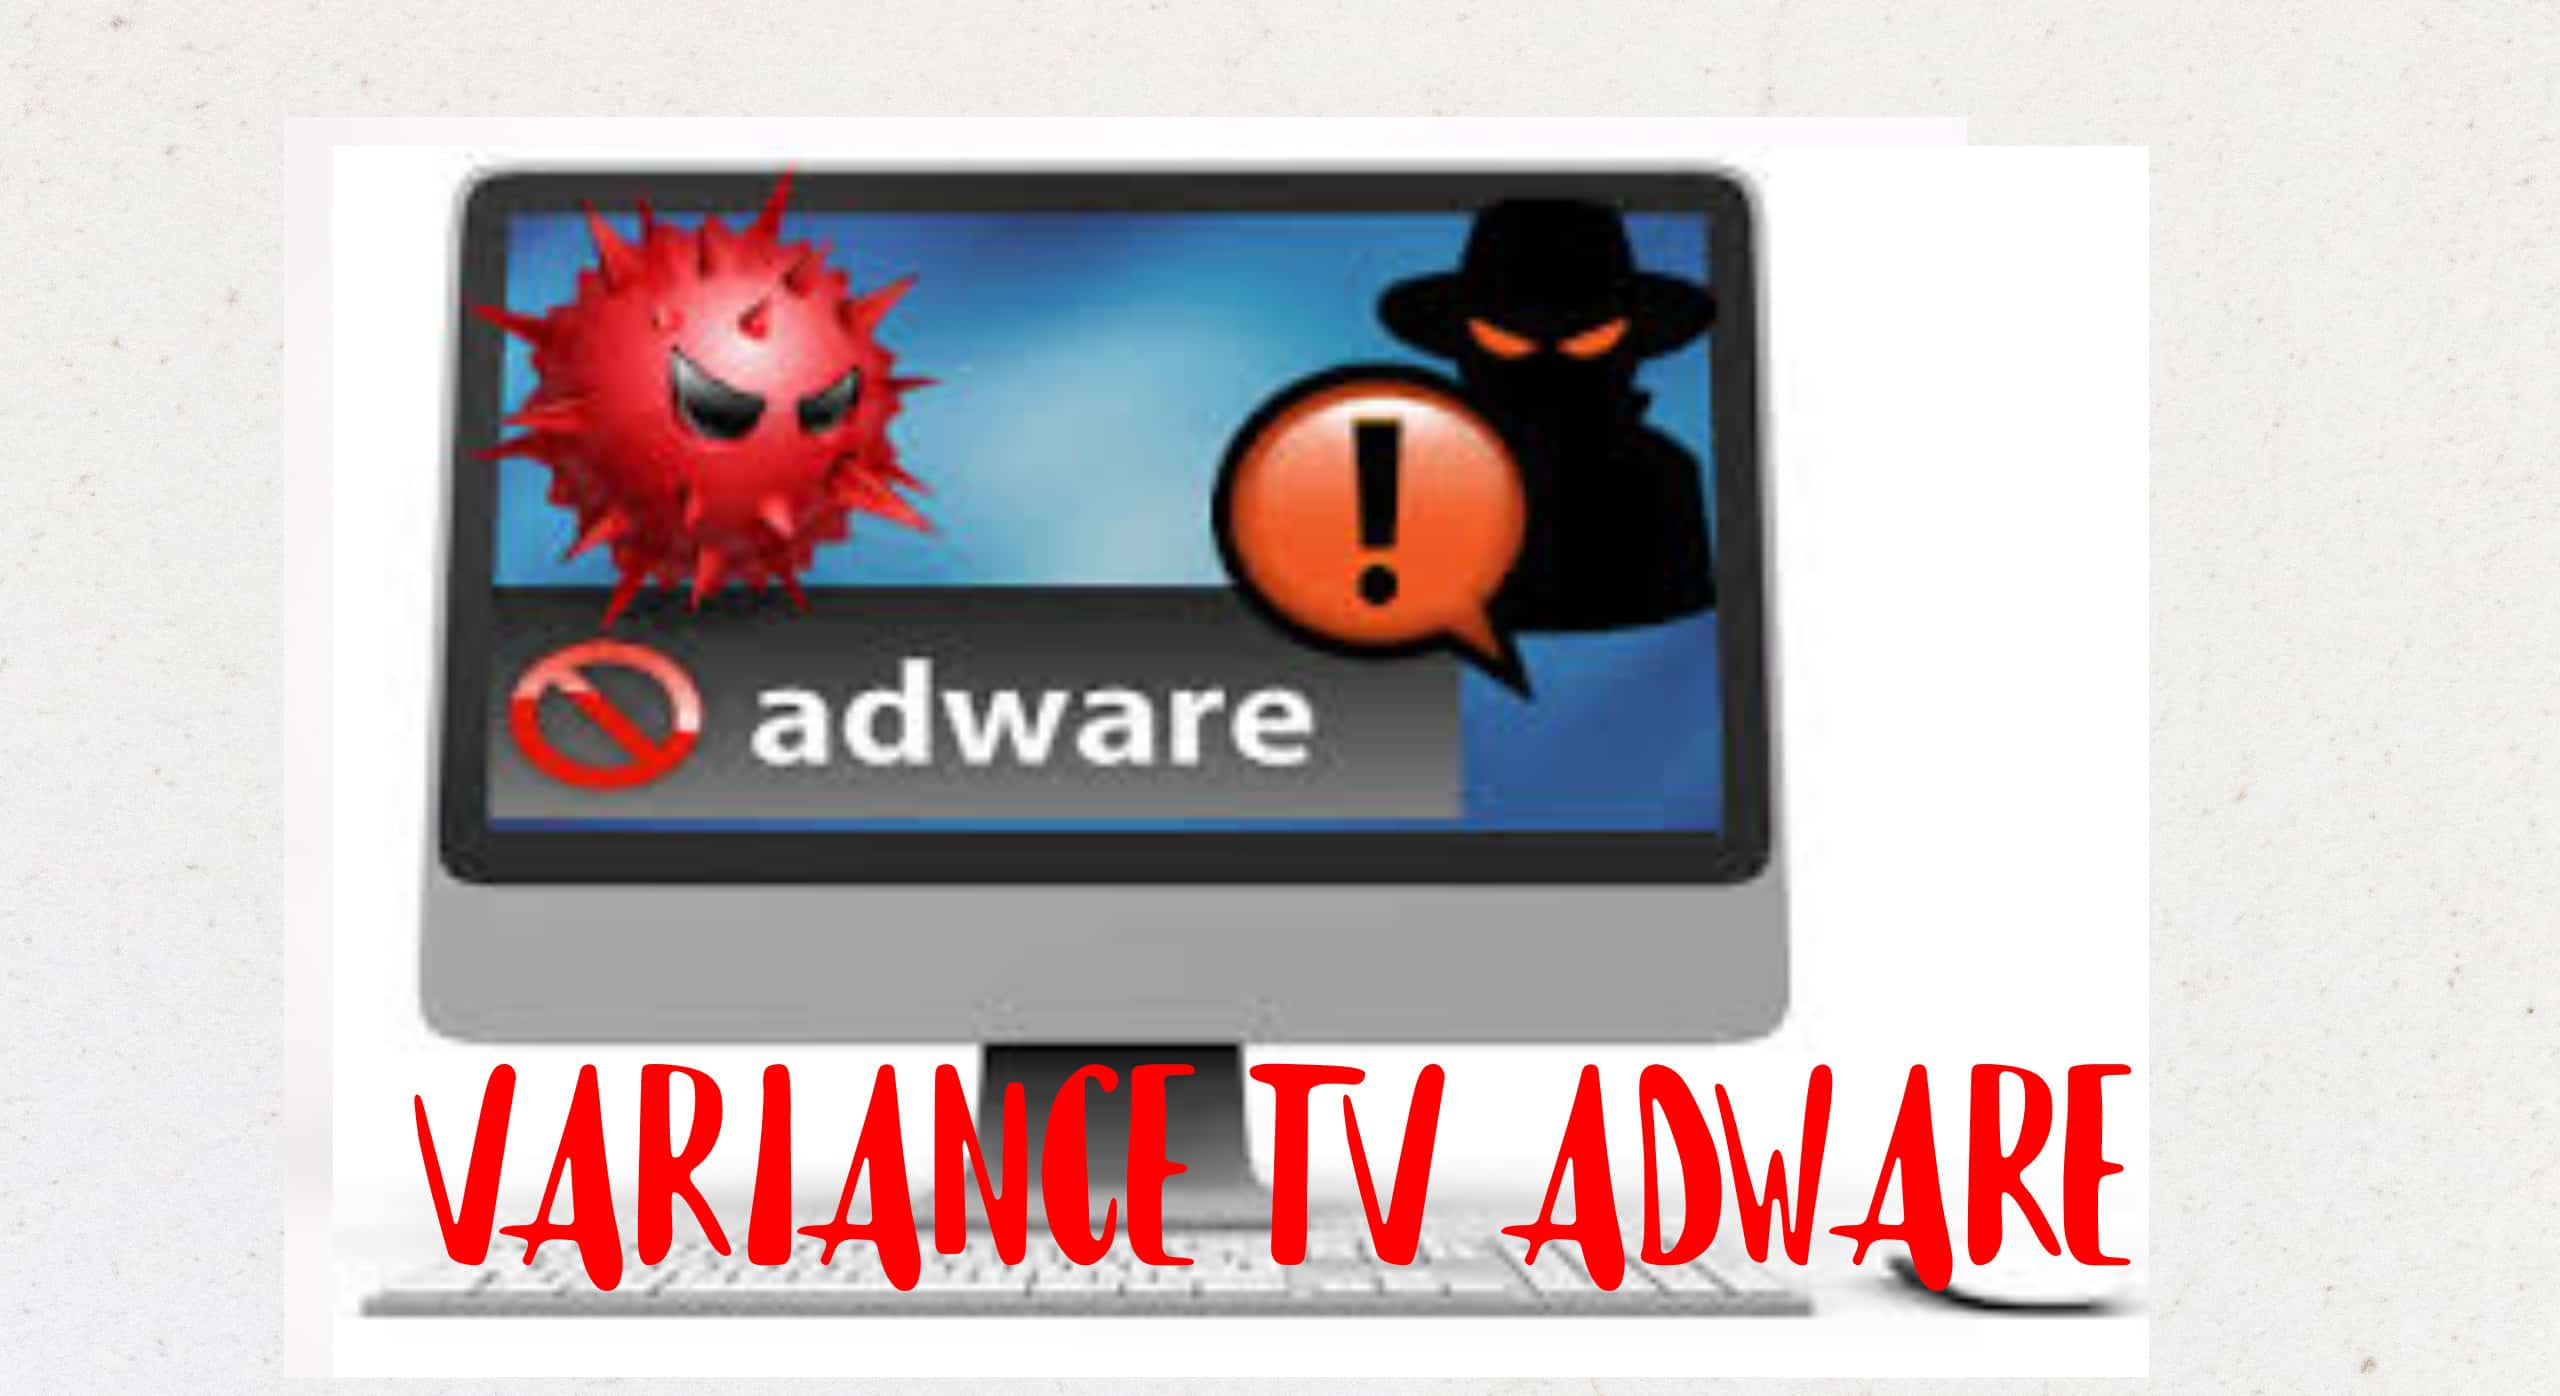 noad variance tv adware